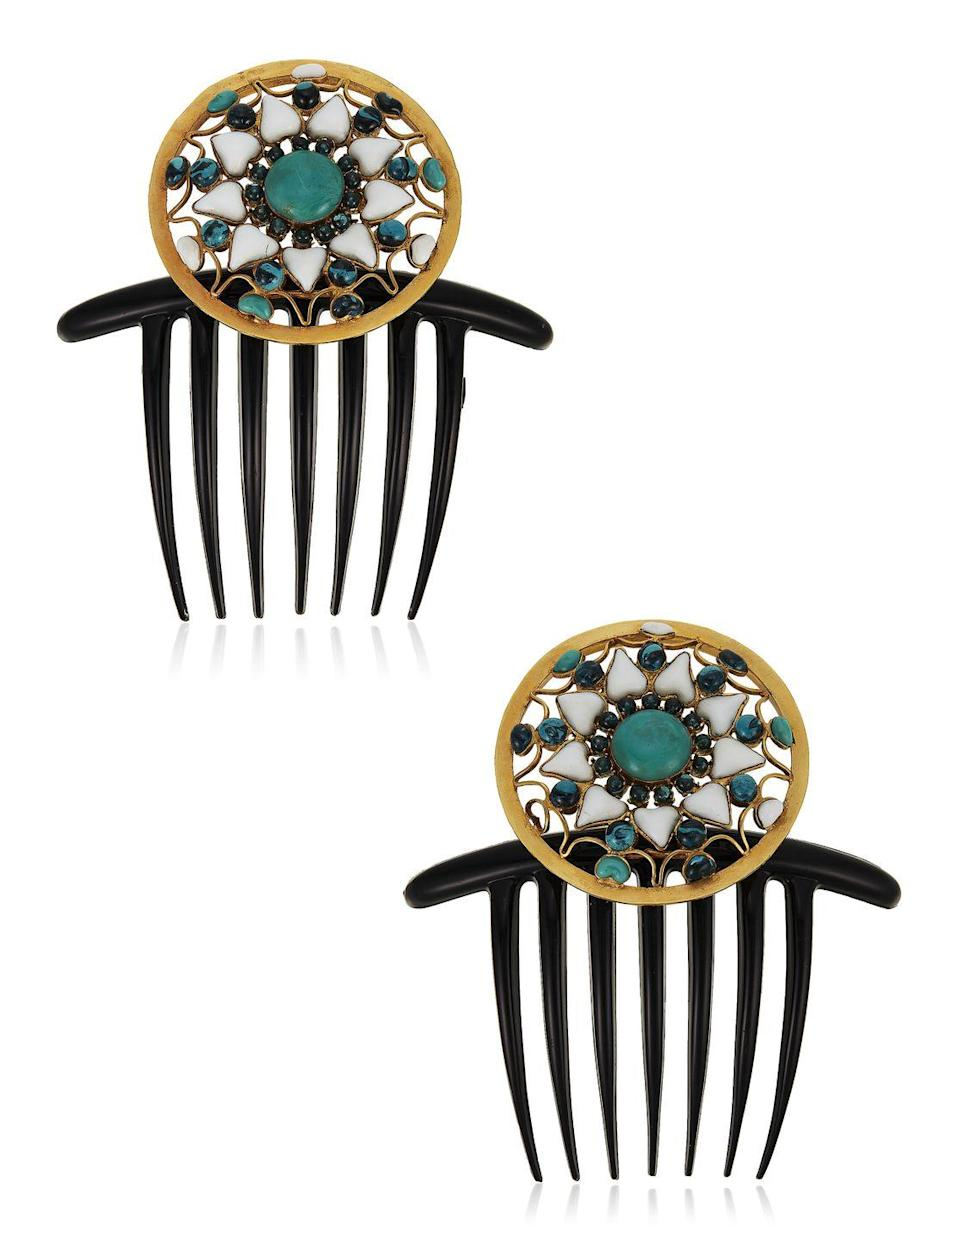 <p>This fabulous hair accessories are estimated to be worth $1,500 to $2,000.</p>